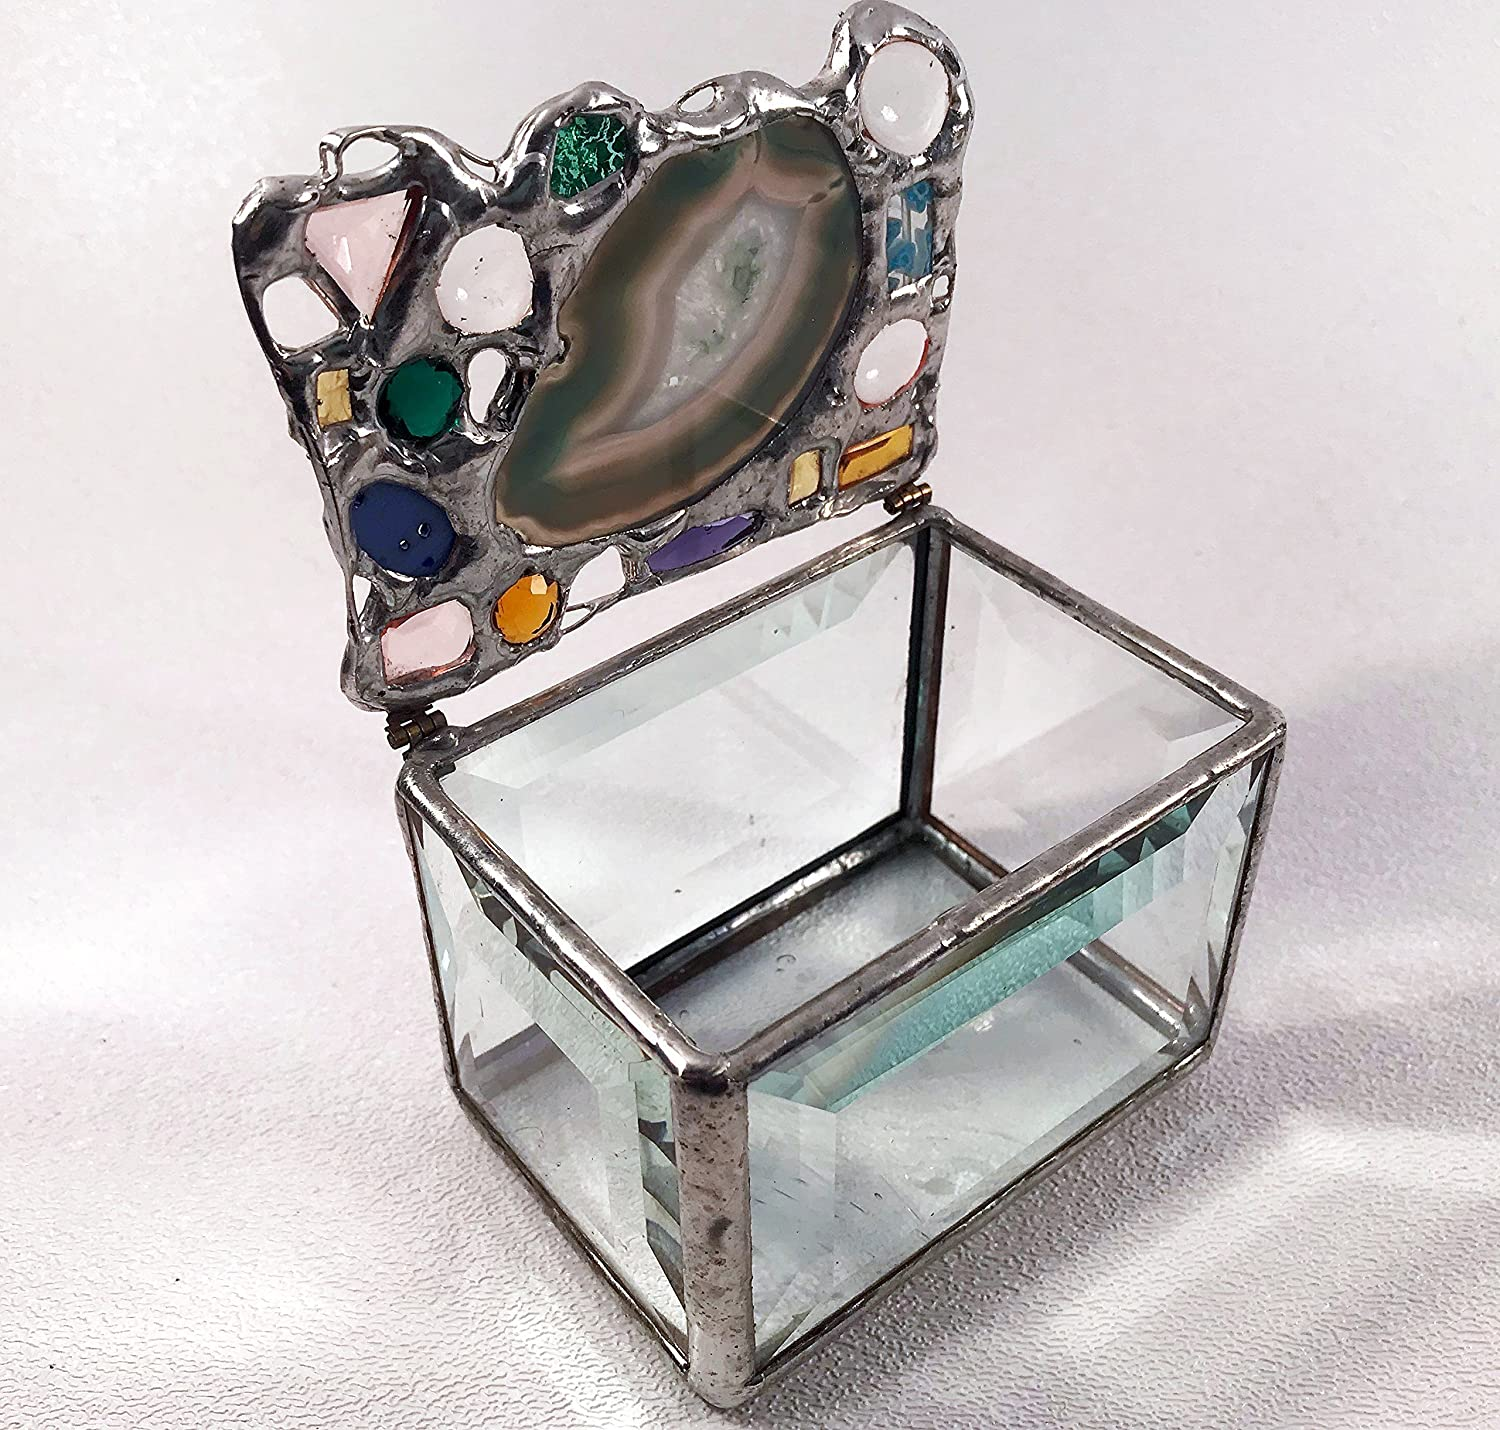 Green, turquoise and tan agate keepsake box with glass bevels and architectural glass bottom, unusual modern and vintage, some faceted, glass jewels. OOAK. Each is unique and cannot be repeated.